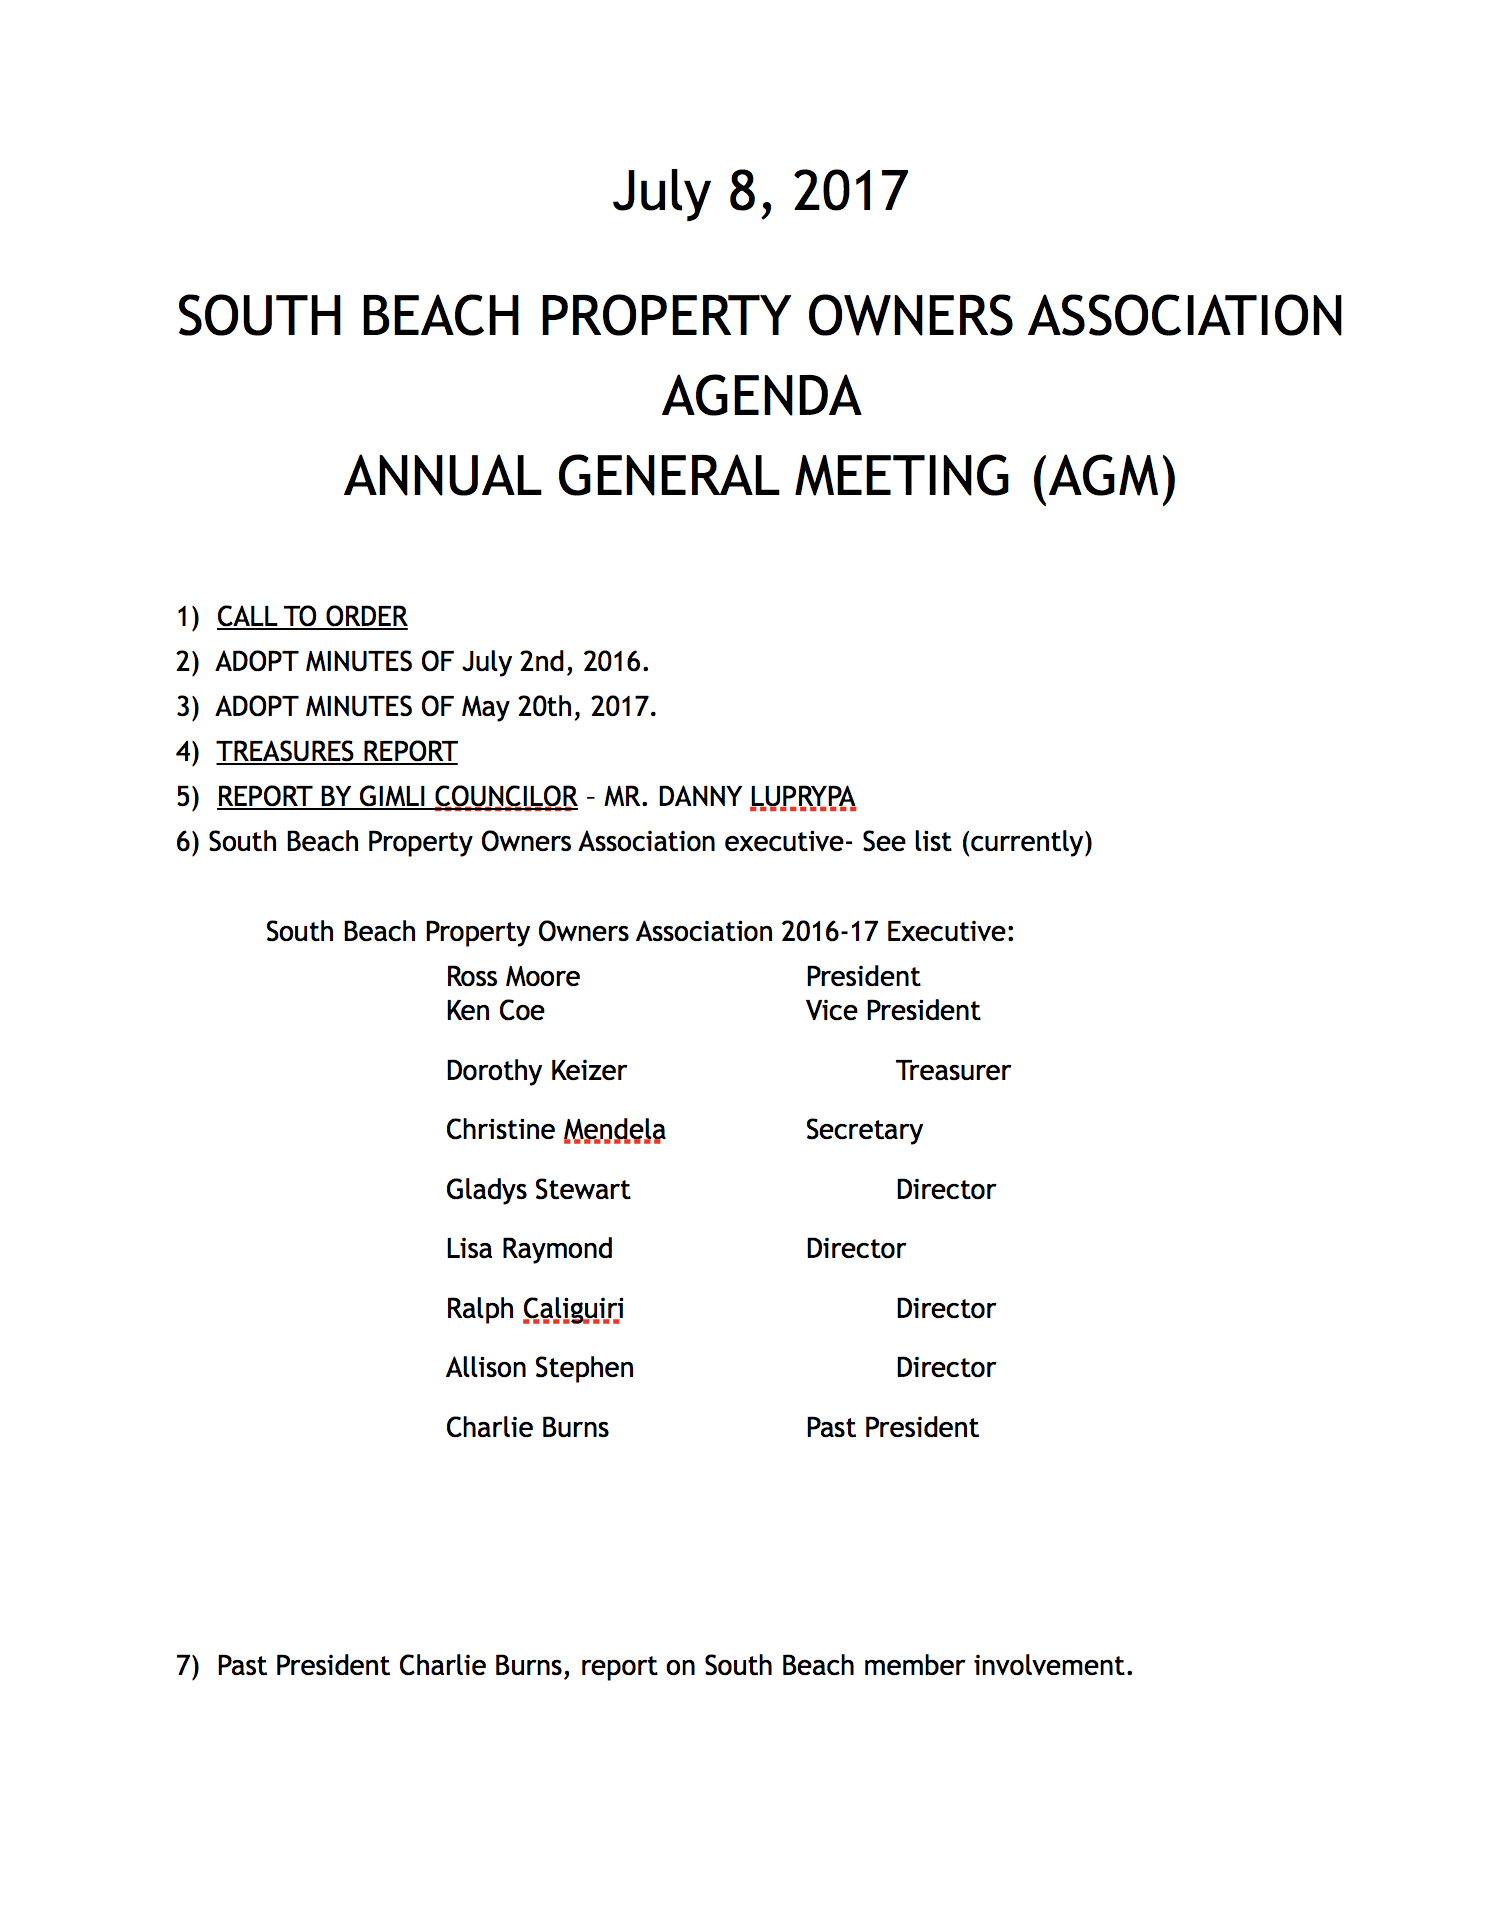 AGM 2017 page 1